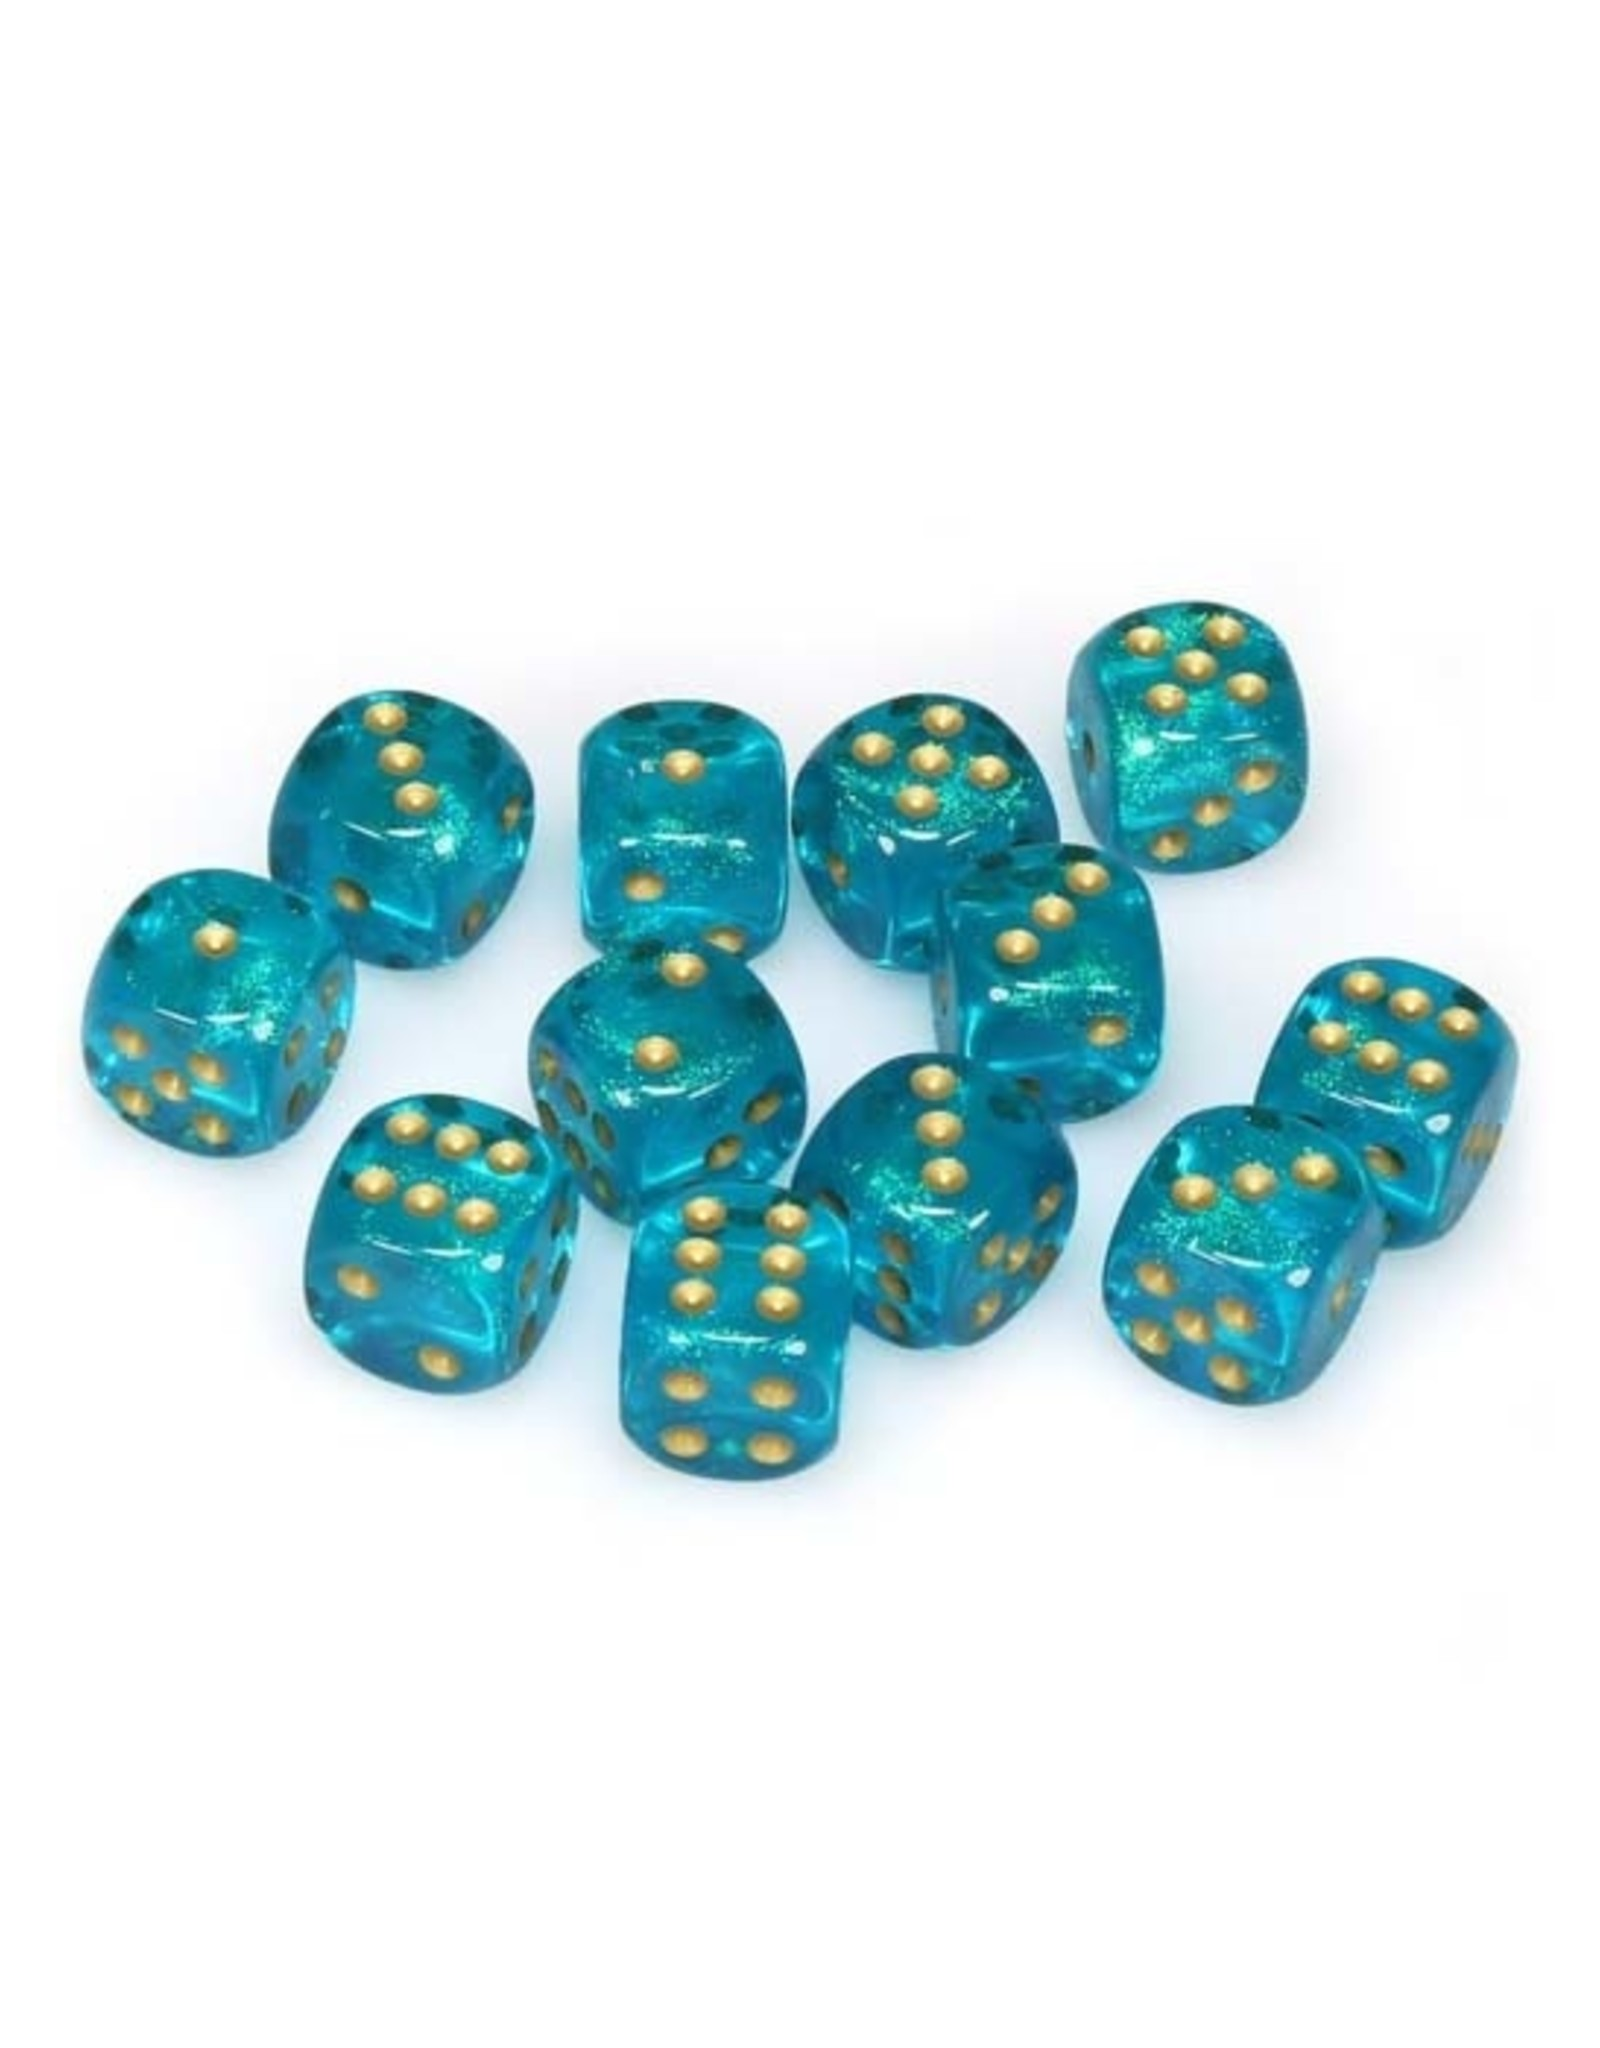 Chessex Chessex: 16mm D6 - Borealis - Teal w/ Gold